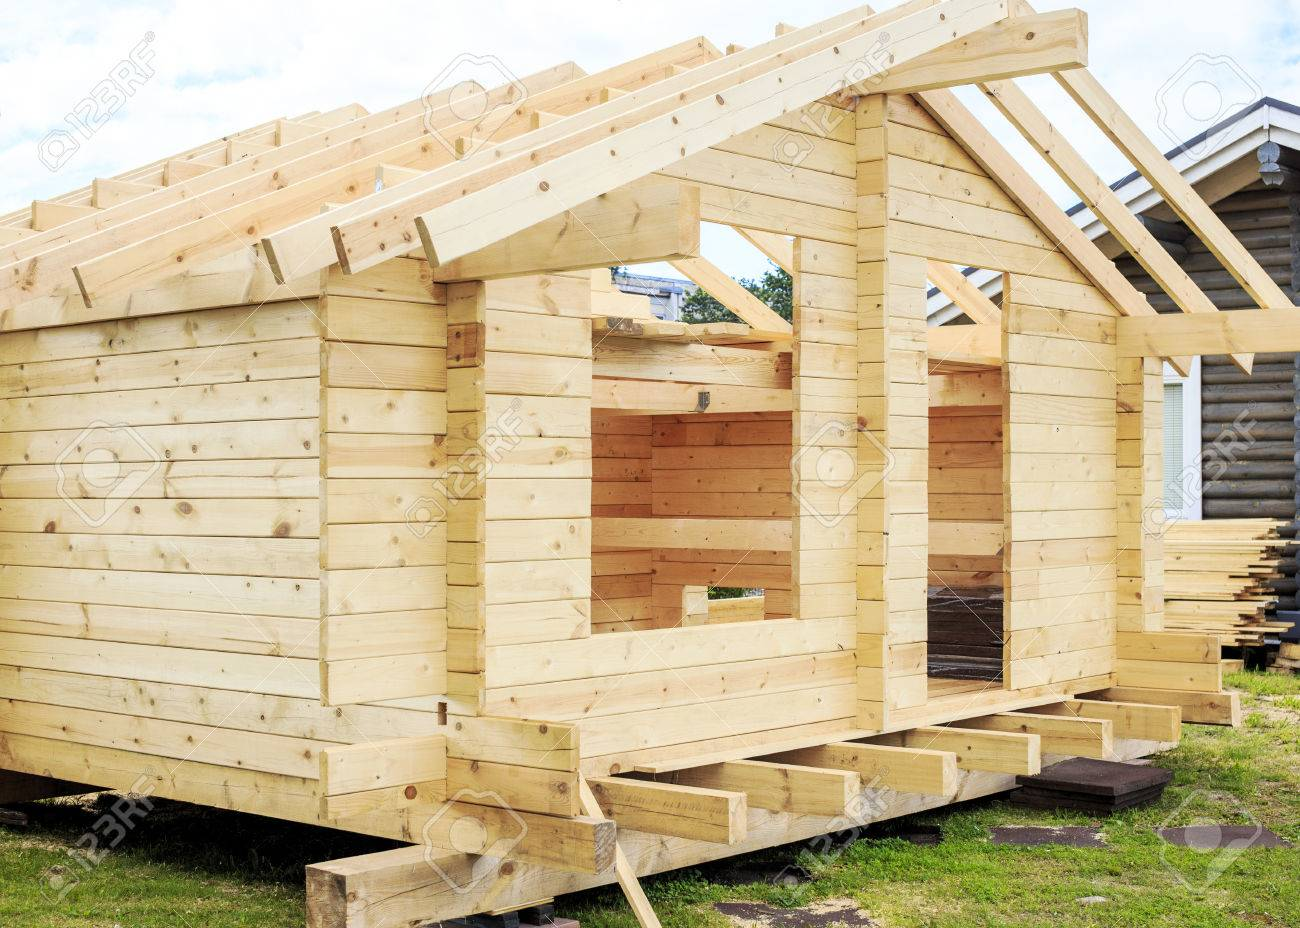 Building New Construction Of A Small Wooden House Stock Photo Picture And Royalty Free Image Image 45883643